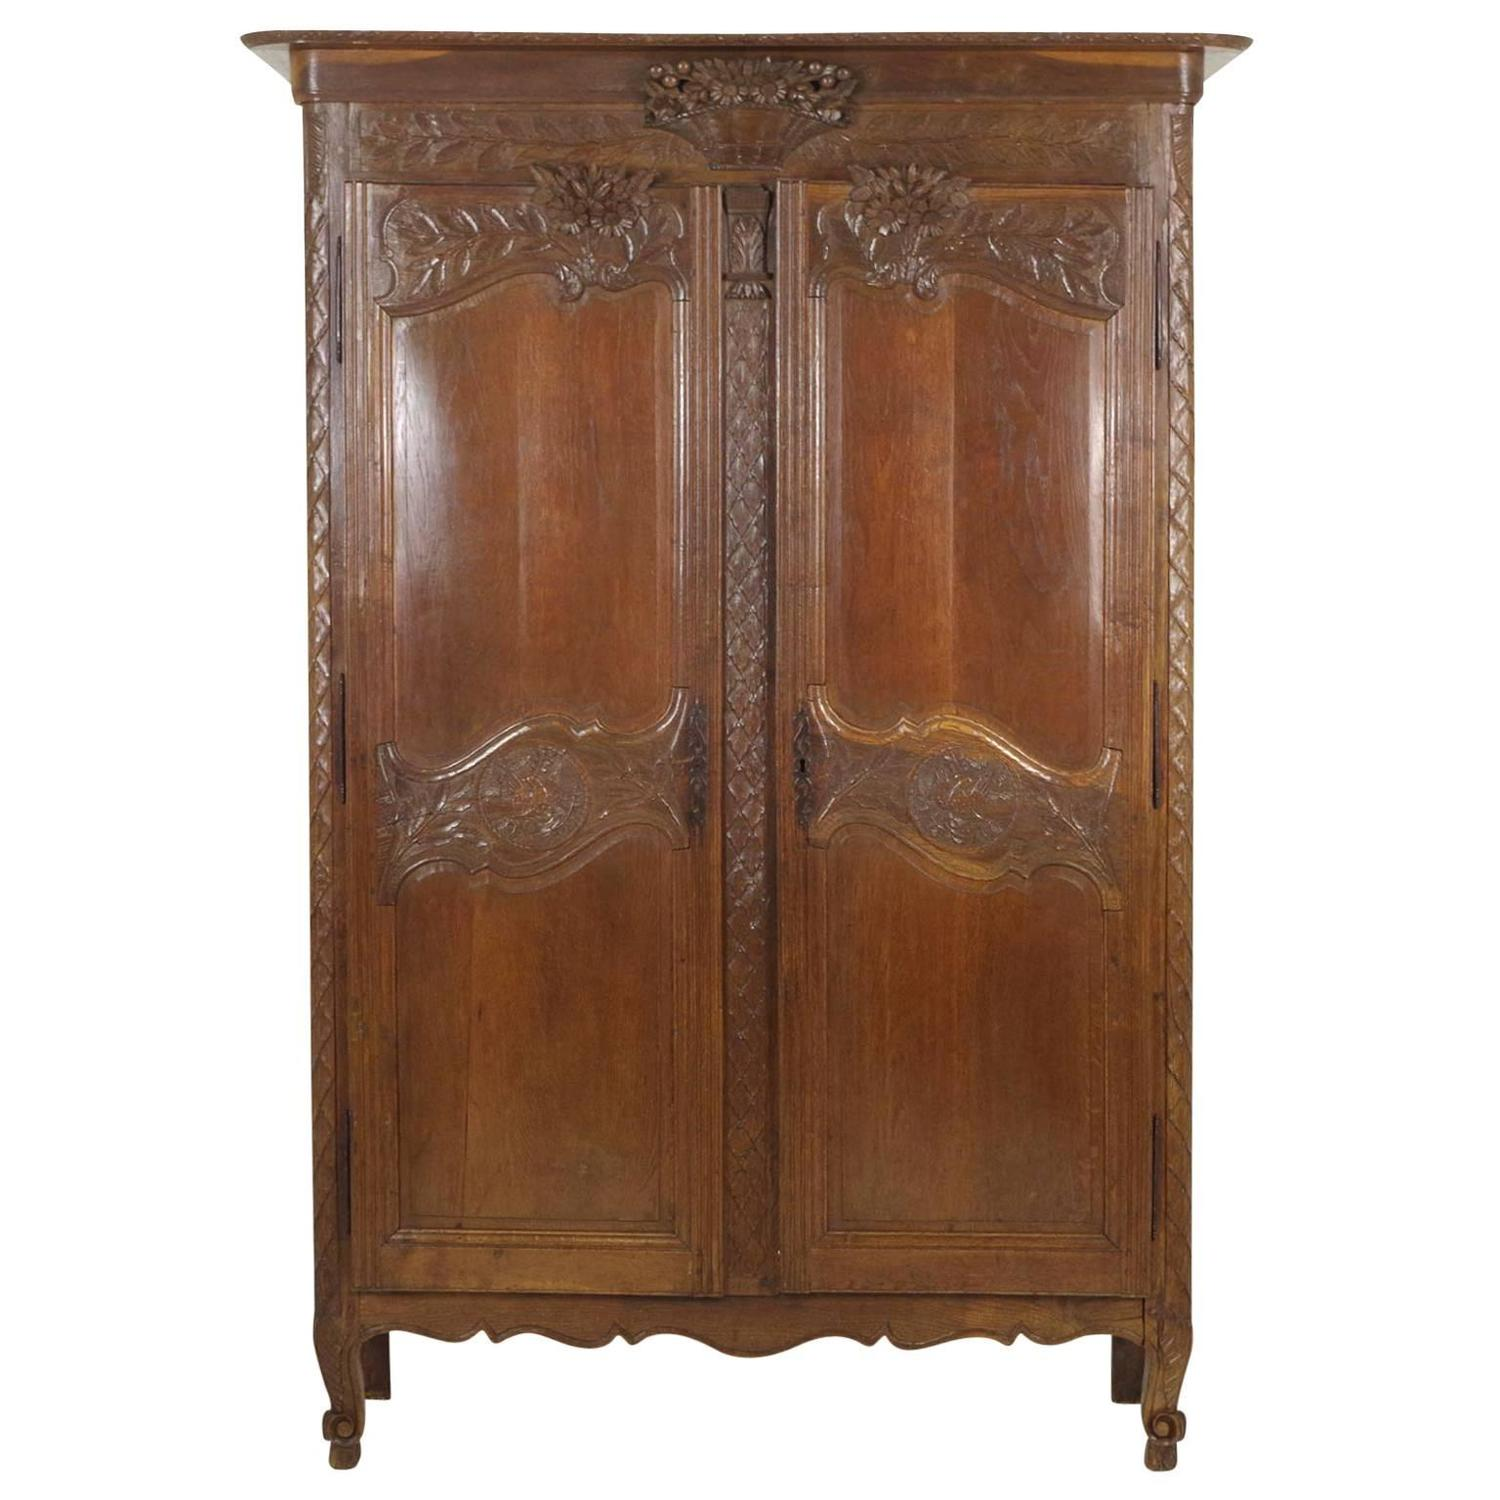 antique french normandy marriage armoire wardrobe 1840 at 1stdibs. Black Bedroom Furniture Sets. Home Design Ideas